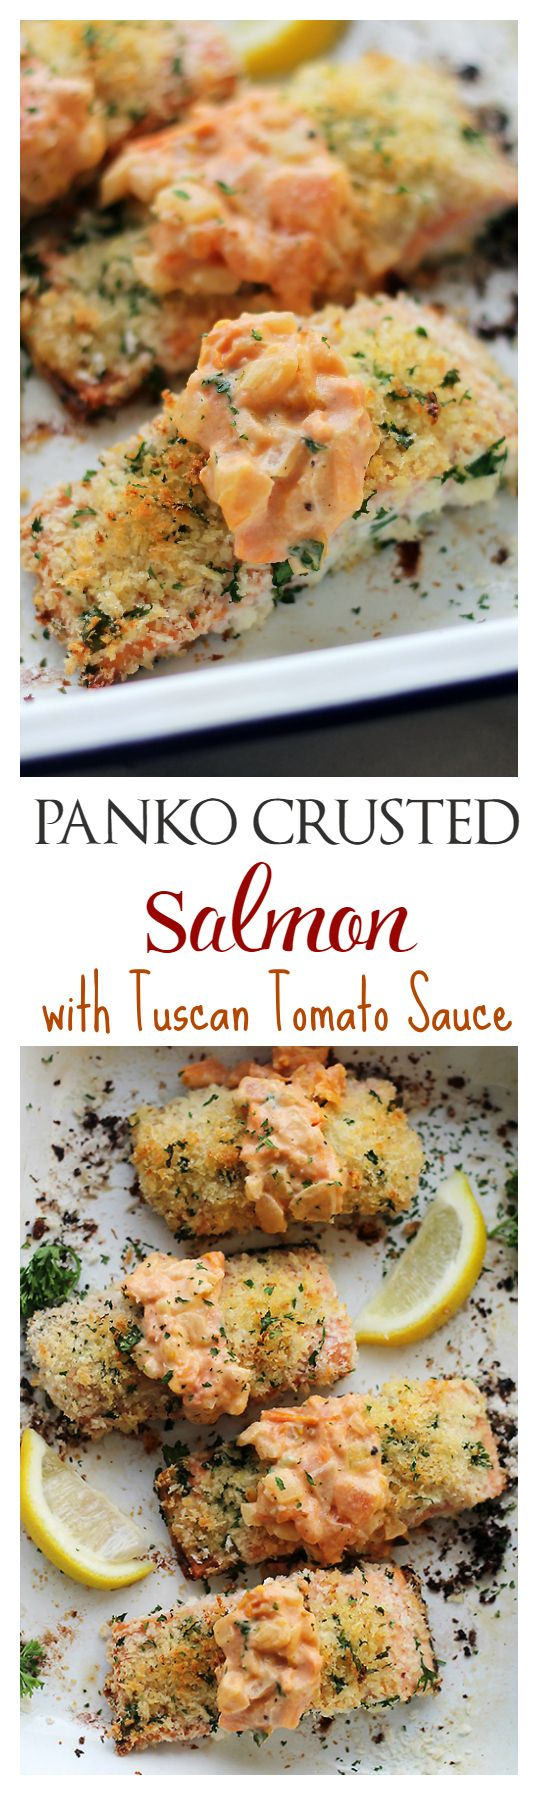 Panko-Crusted Salmon with Tuscan Tomato Sauce